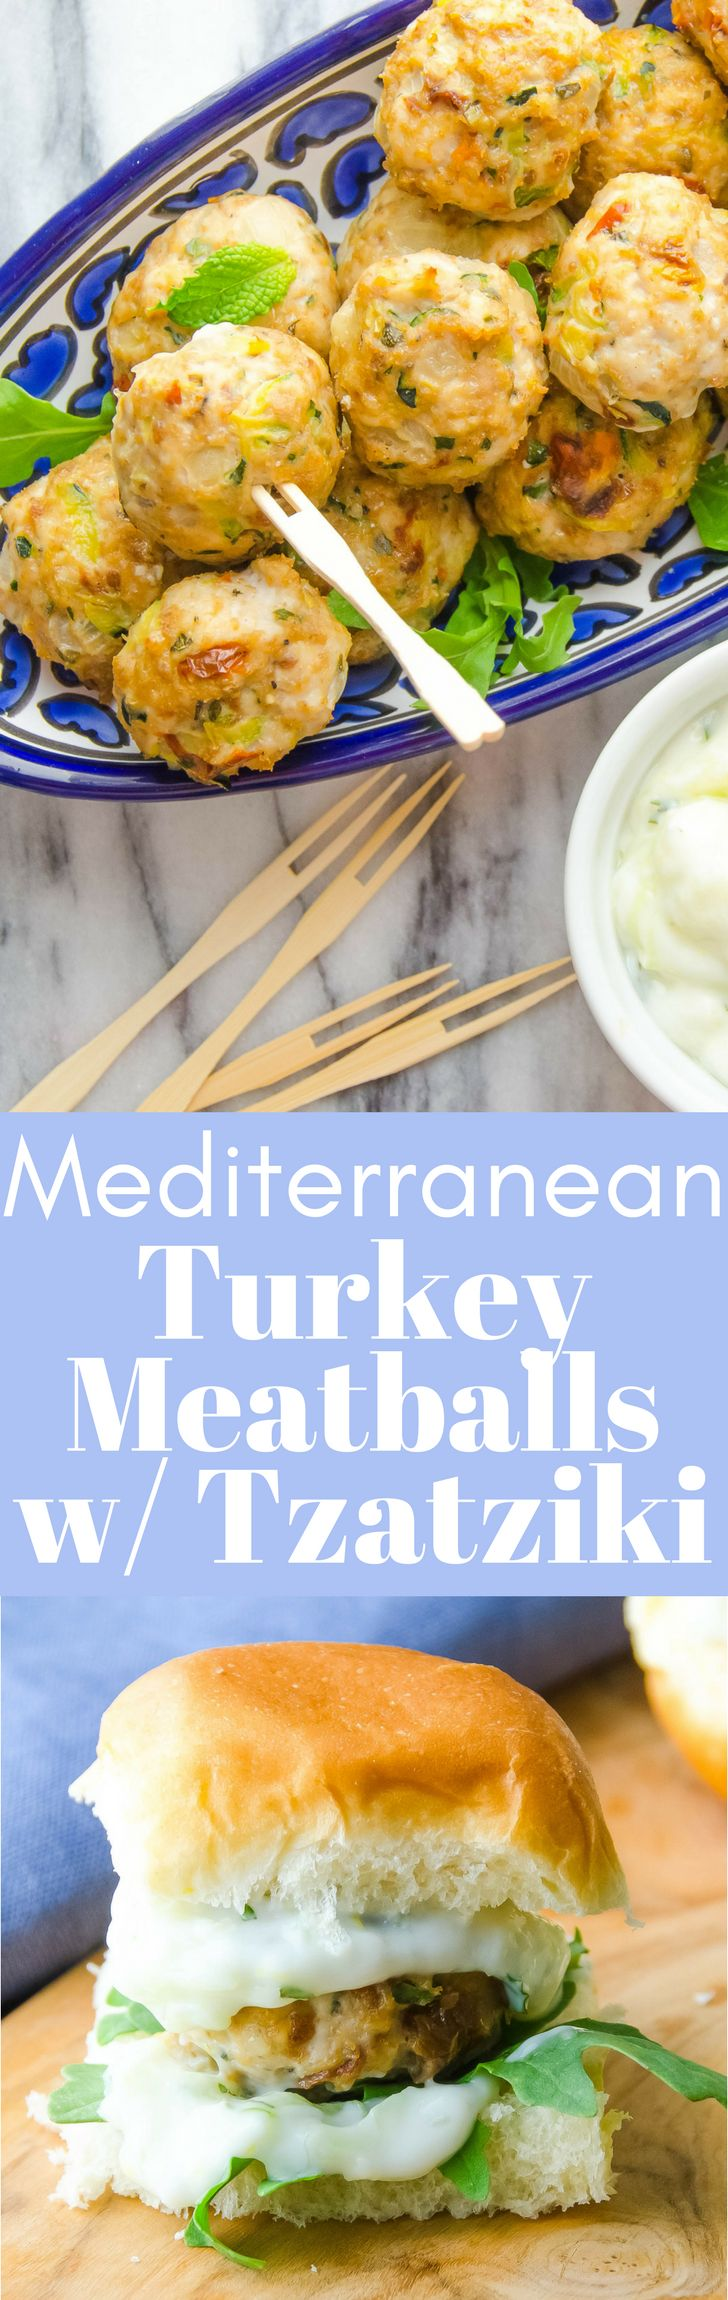 A tasty hors d'oeuvre that serves a crowd! Mediterranean Turkey Meatballs with Tzatziki sauce will be the star of your next party! Get the easy recipe!